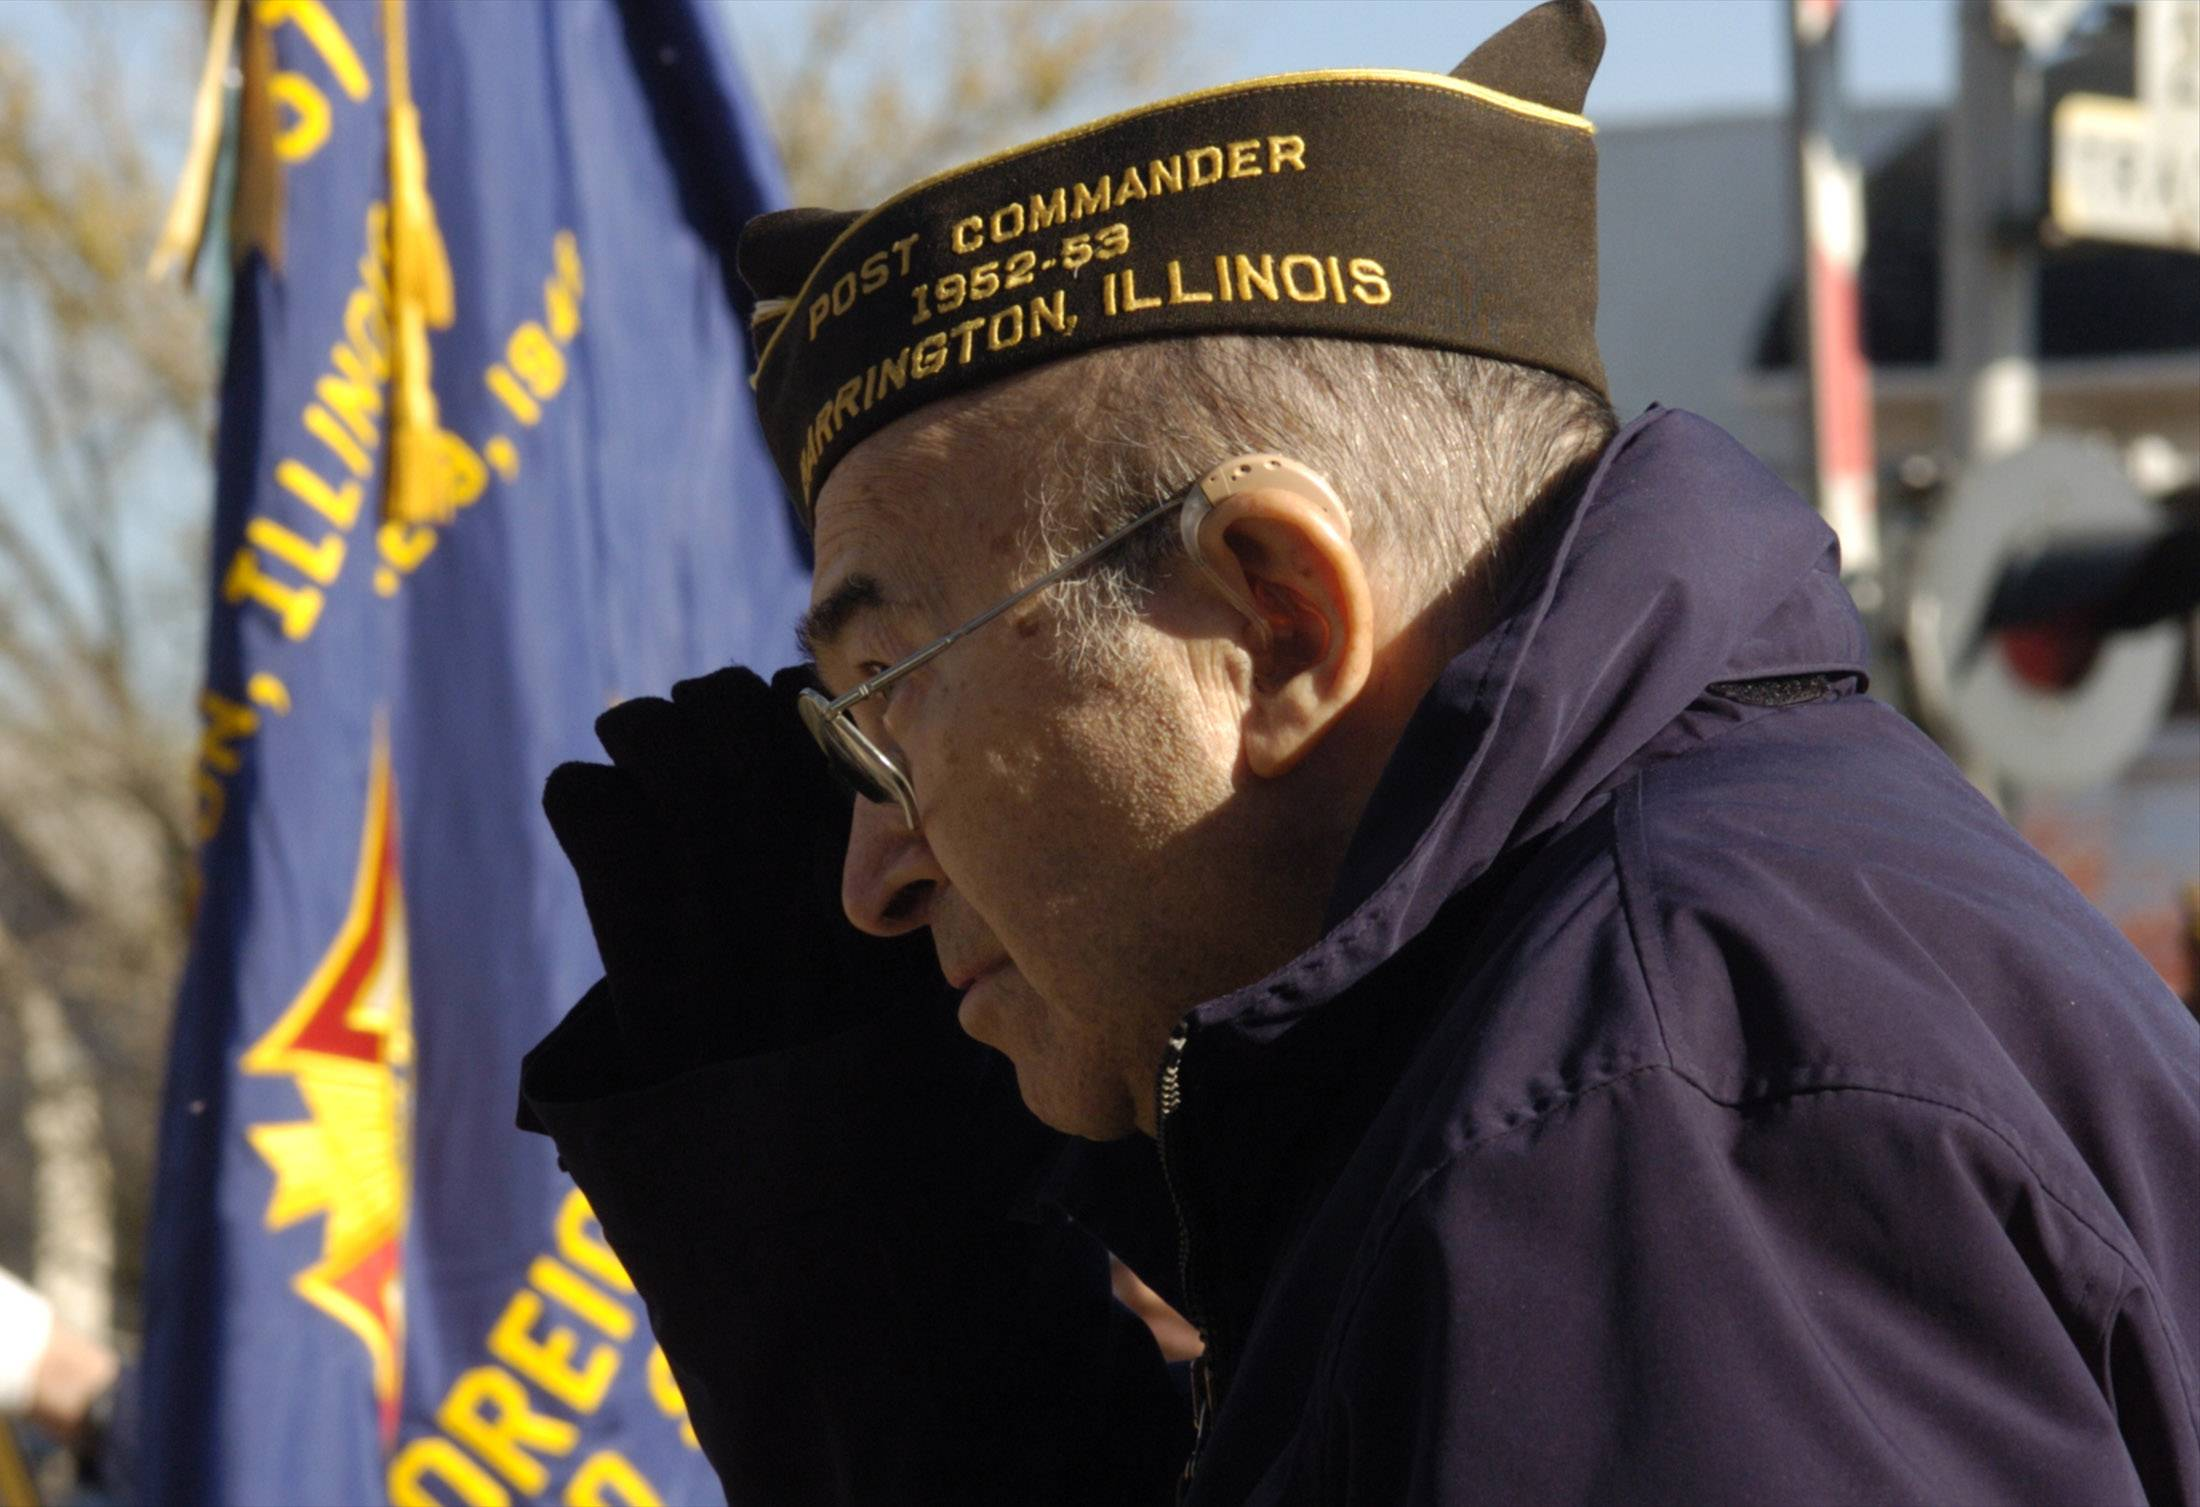 Harold Lipofsky, who served as president of Barrington VFW Post 7706, during a Memorial Day service in 2005.